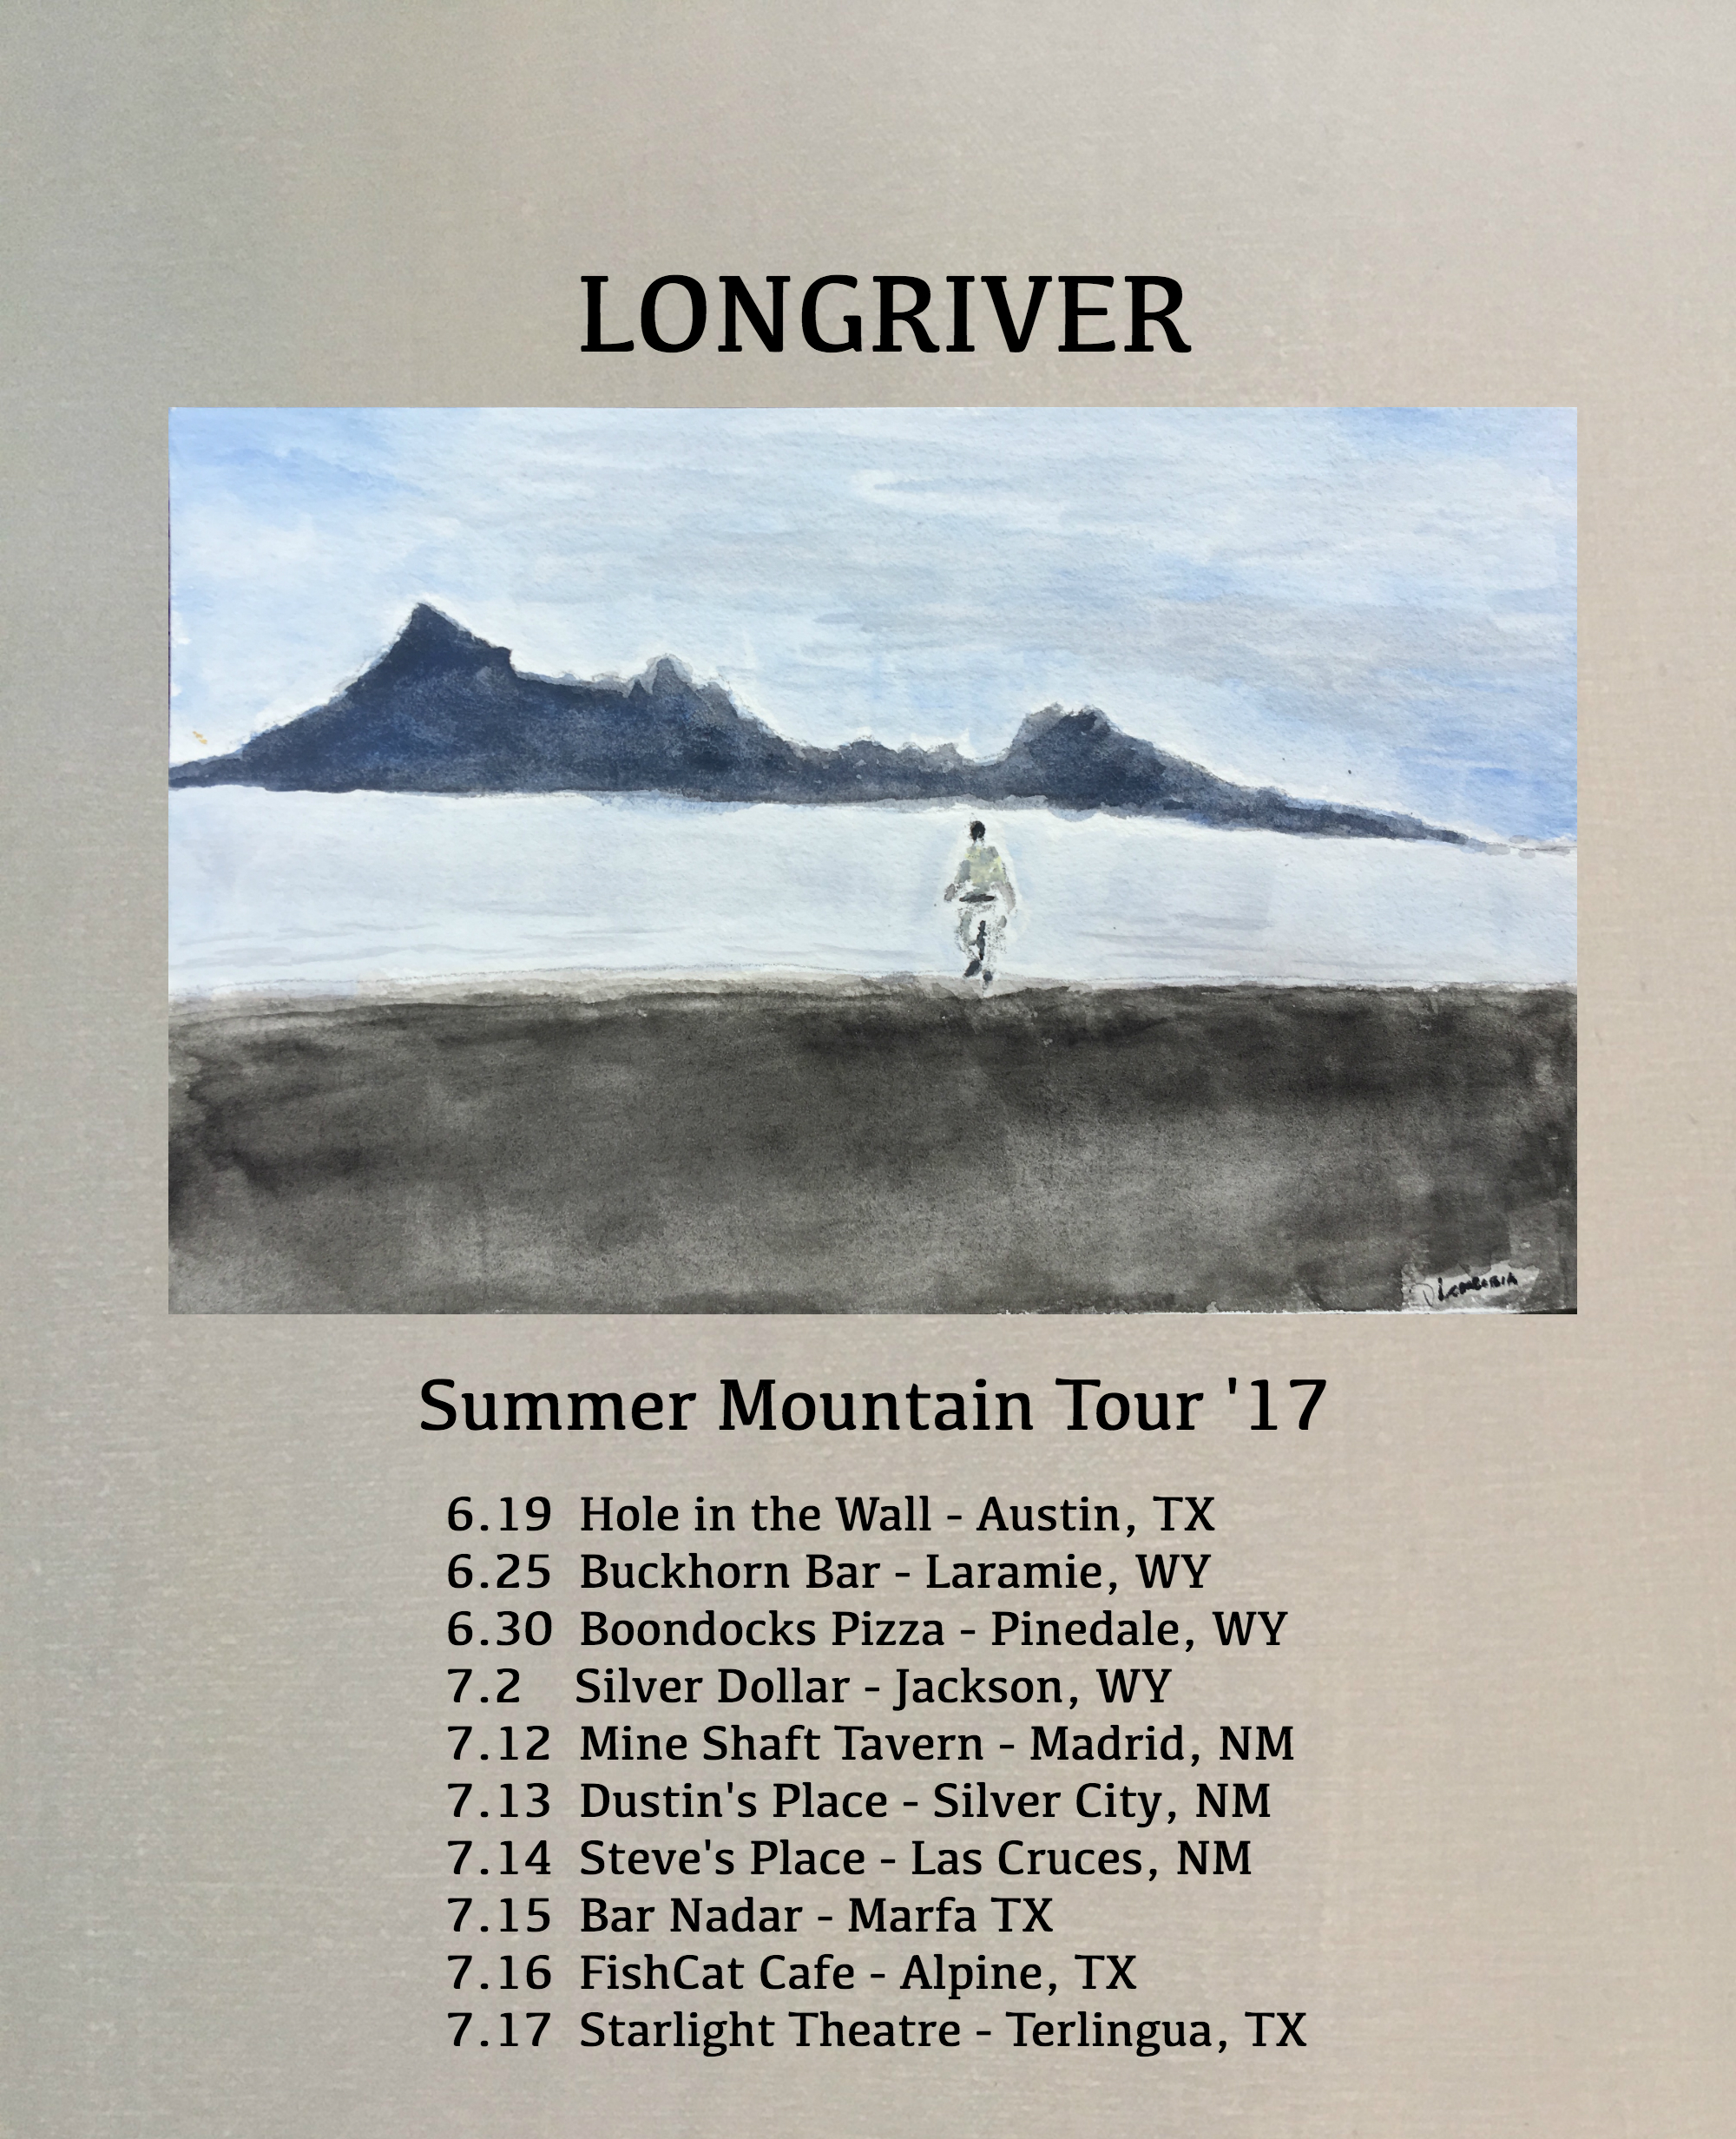 Summer Mountain Tour '17